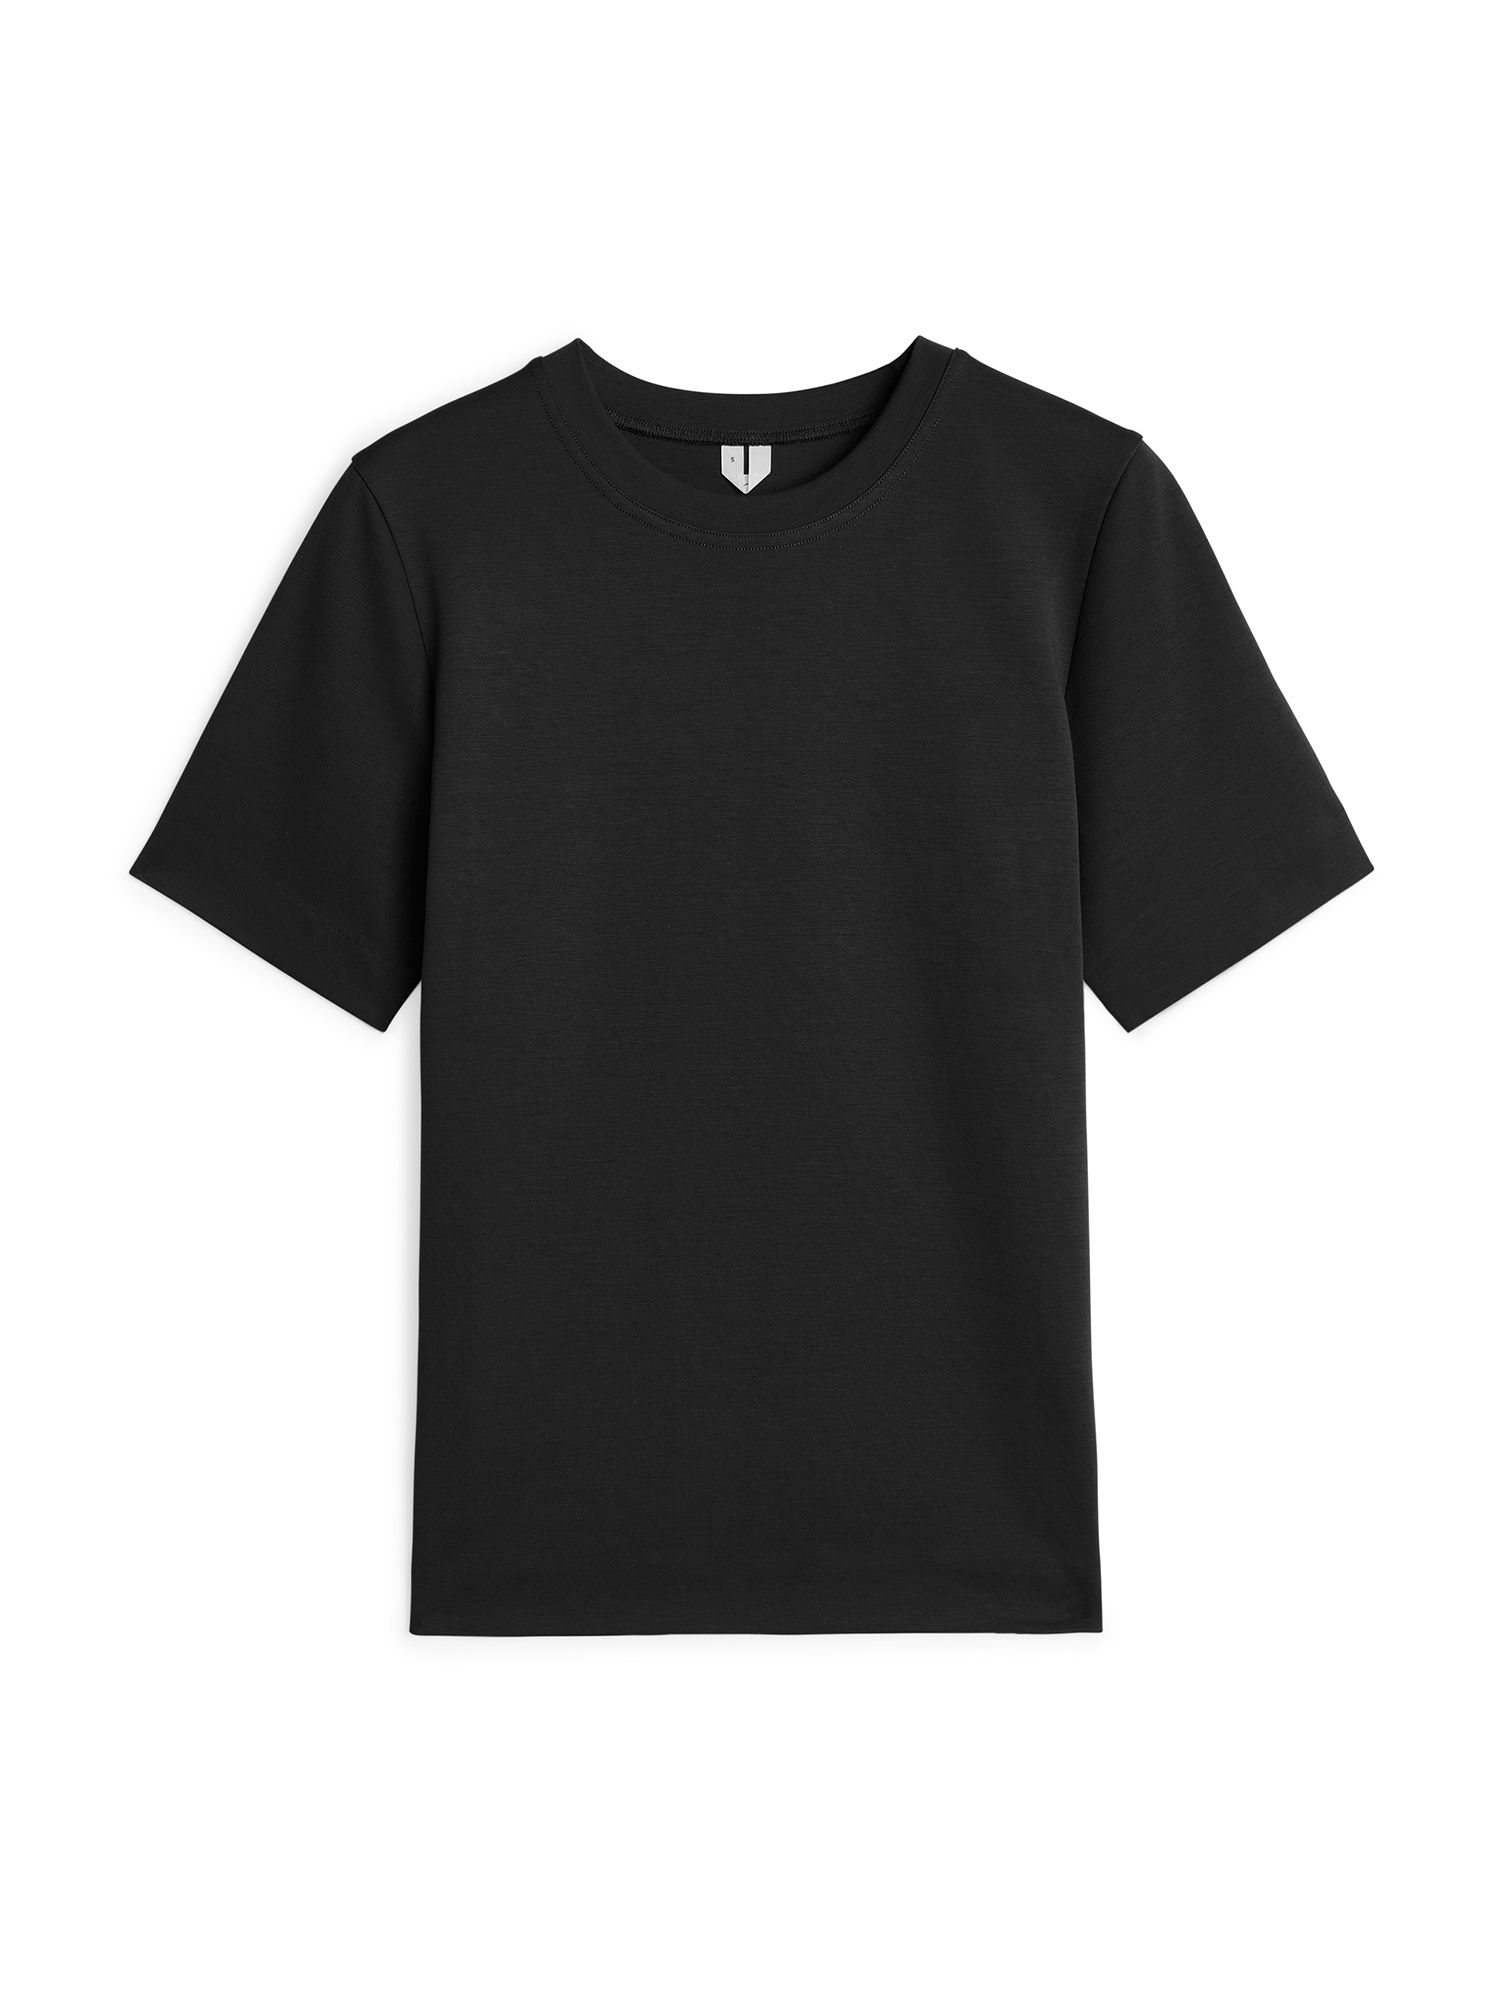 Fabric Swatch image of Arket heavy-weight t-shirt in black